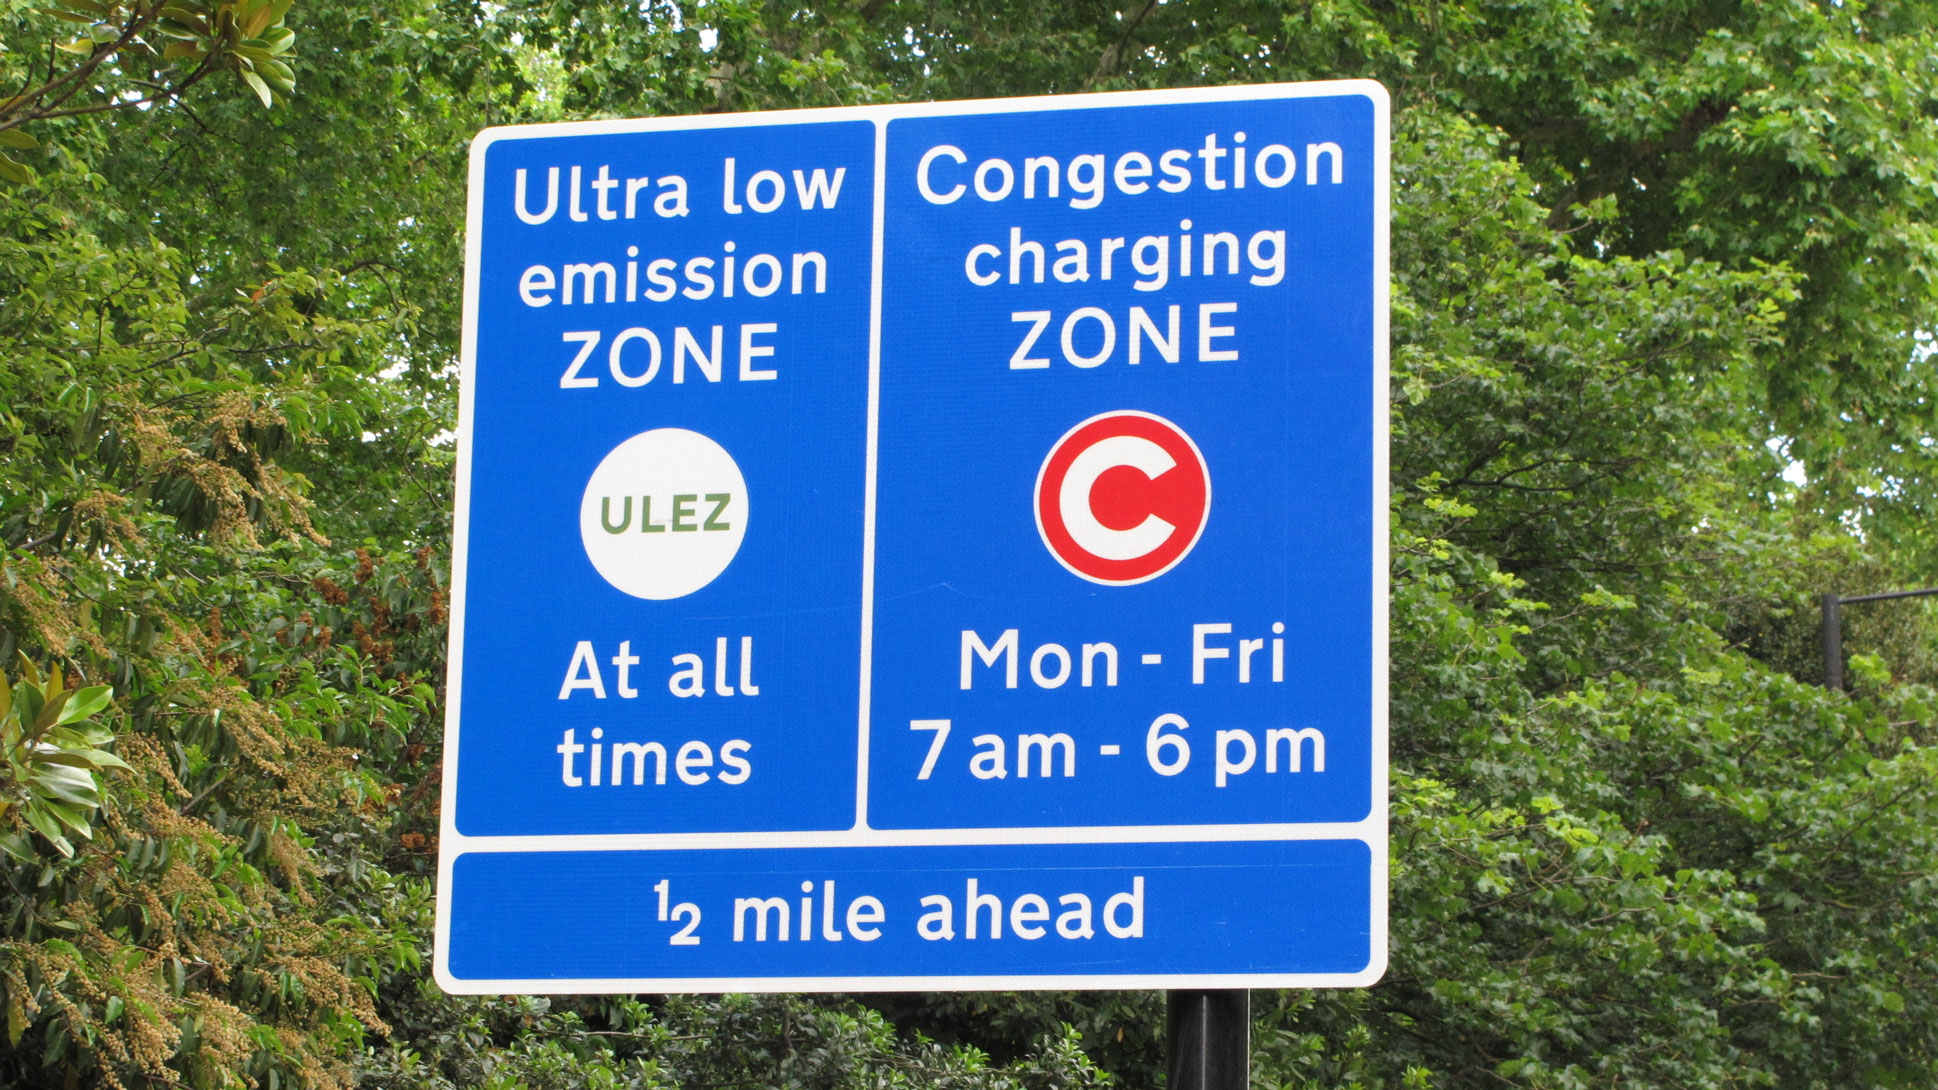 A road sign in blue with the text 'Ultra low emission zone' and 'Congestion charging zone' displayed in it.